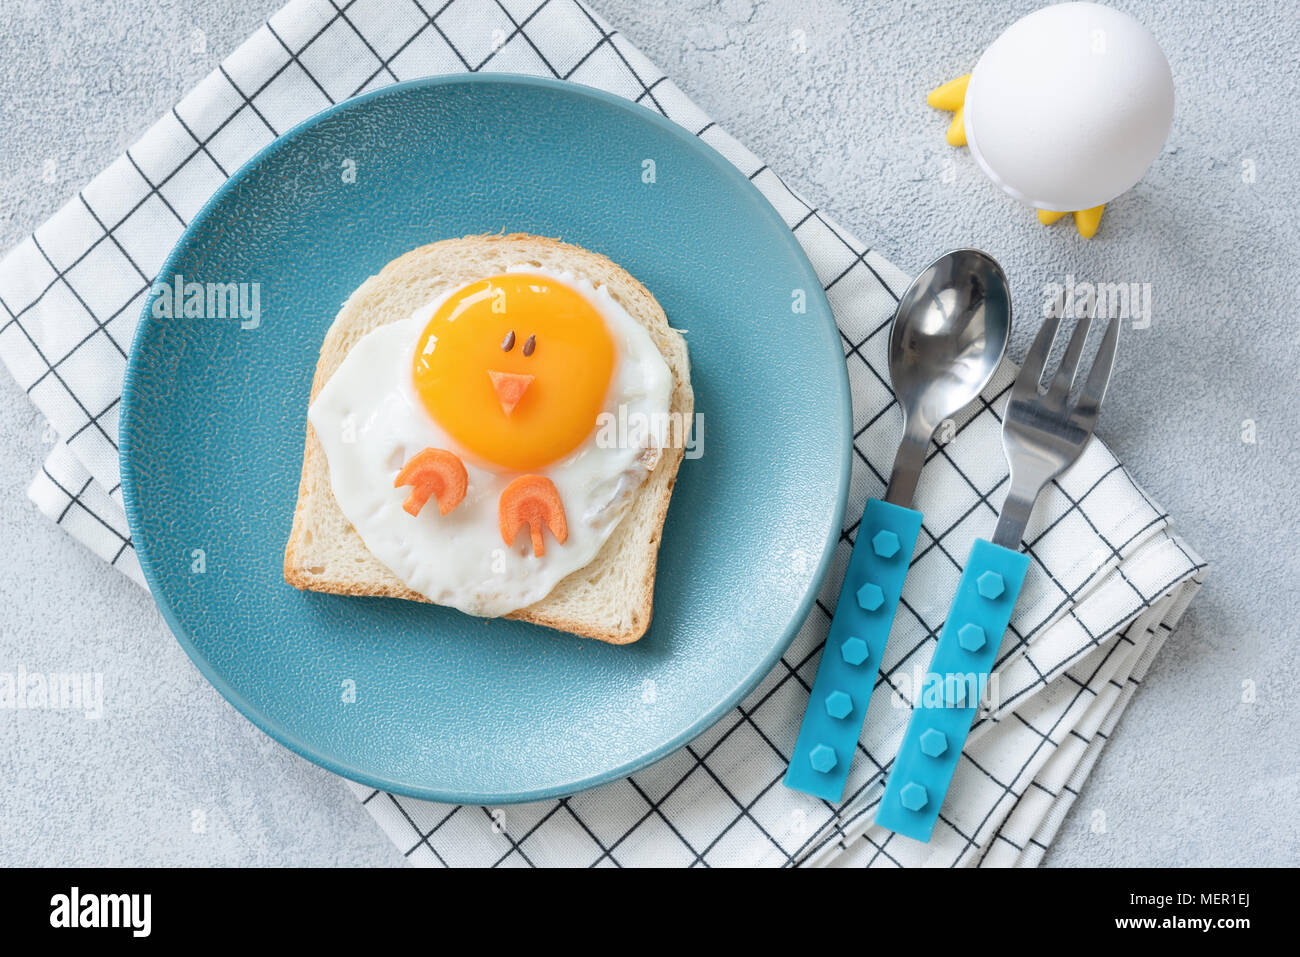 Chicken Shape Stock Photos & Chicken Shape Stock Images - Alamy